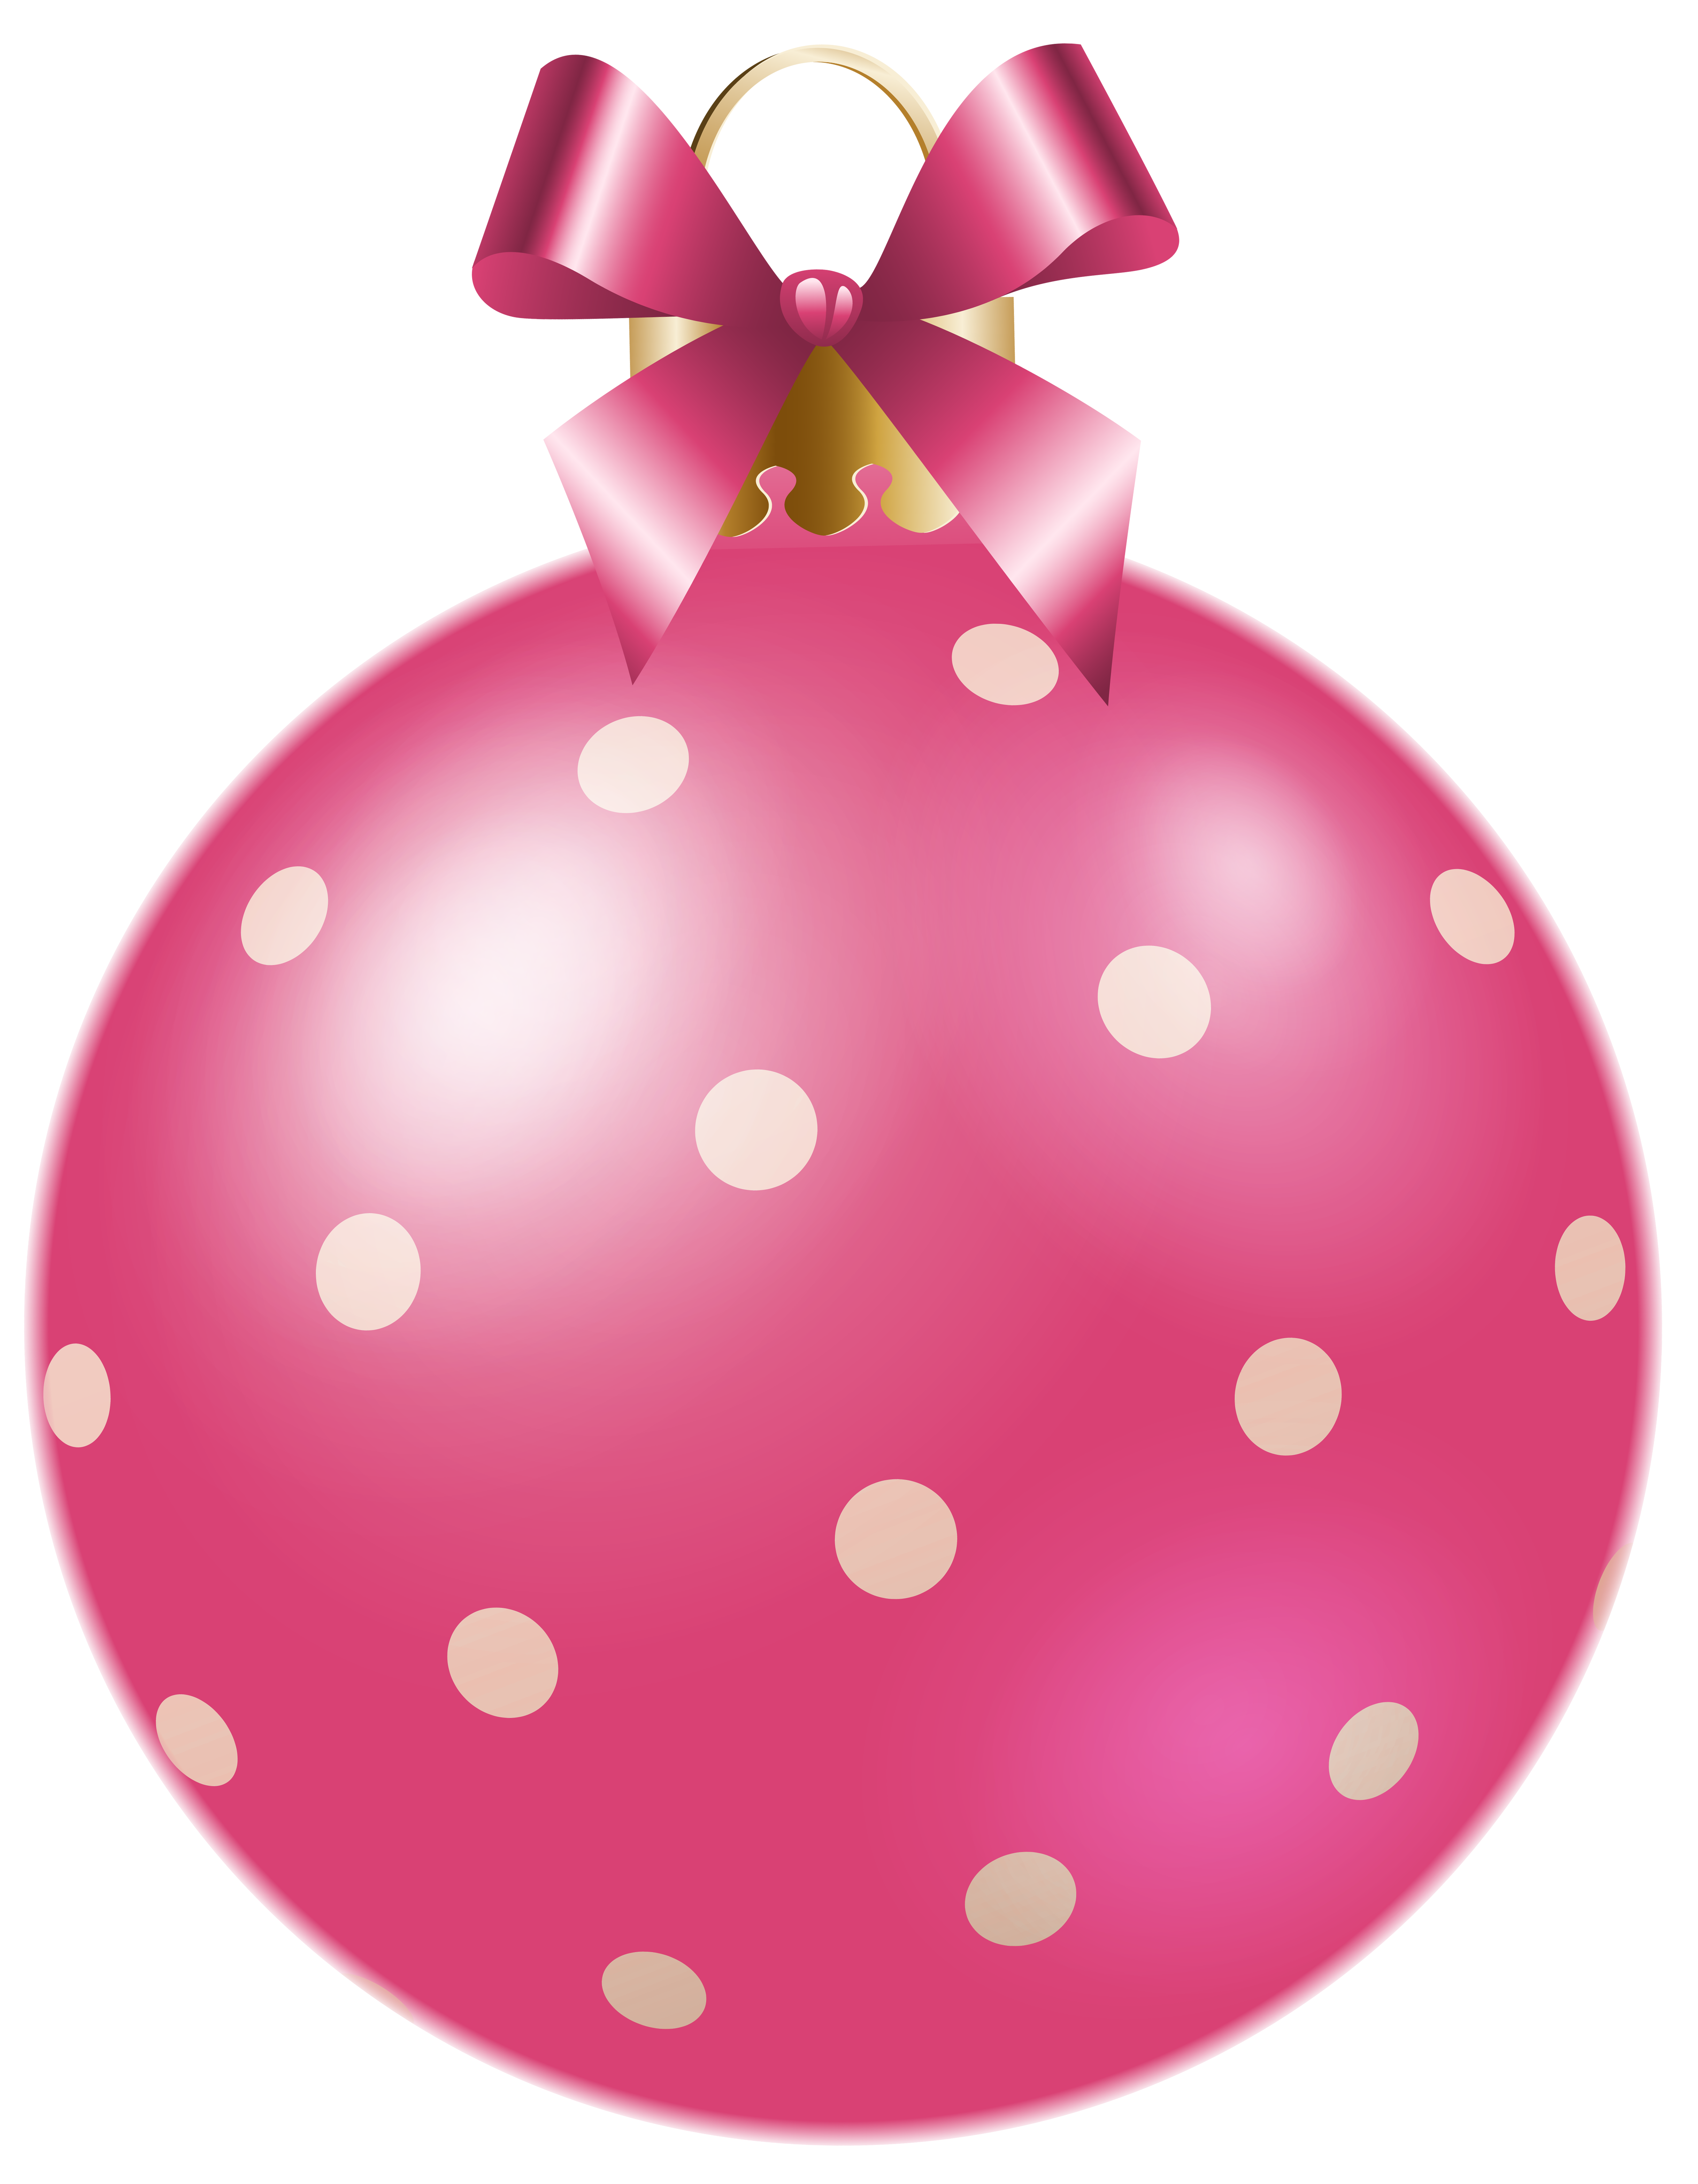 Xmas clipart pink. Christmas dotted ball png